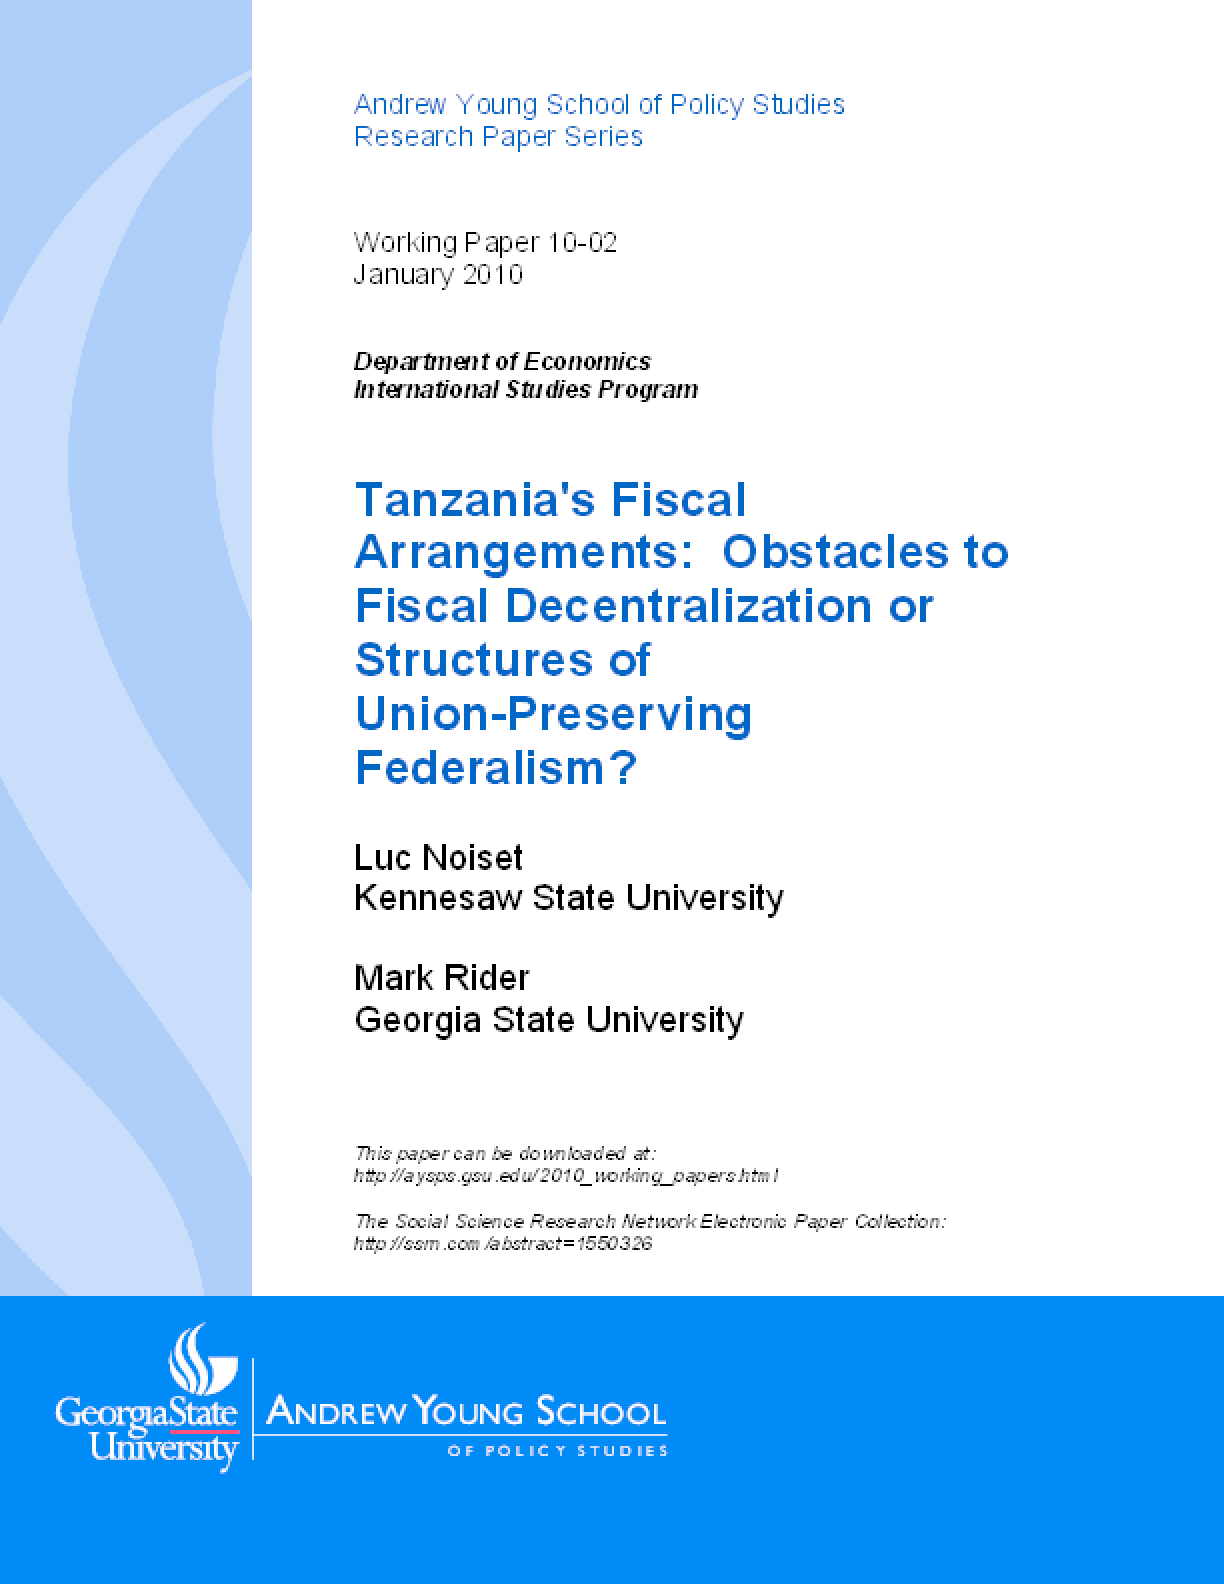 Tanzania's Fiscal Arrangements: Obstacles to Fiscal Decentralization or Structures of Union-Preserving Federalism?